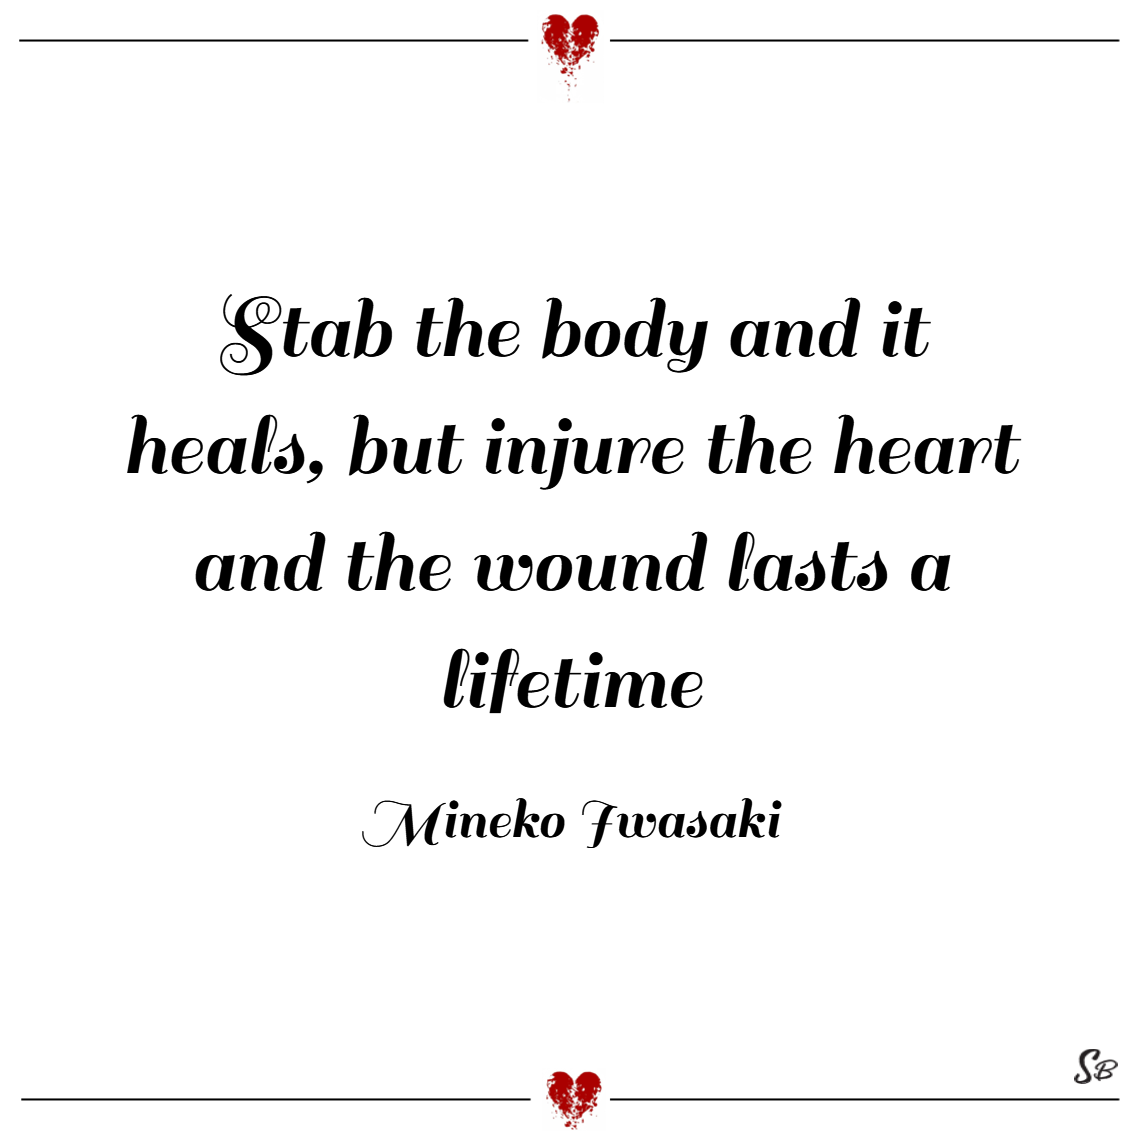 Stab the body and it heals, but injure the heart and the wound lasts a lifetime. – mineko iwasaki